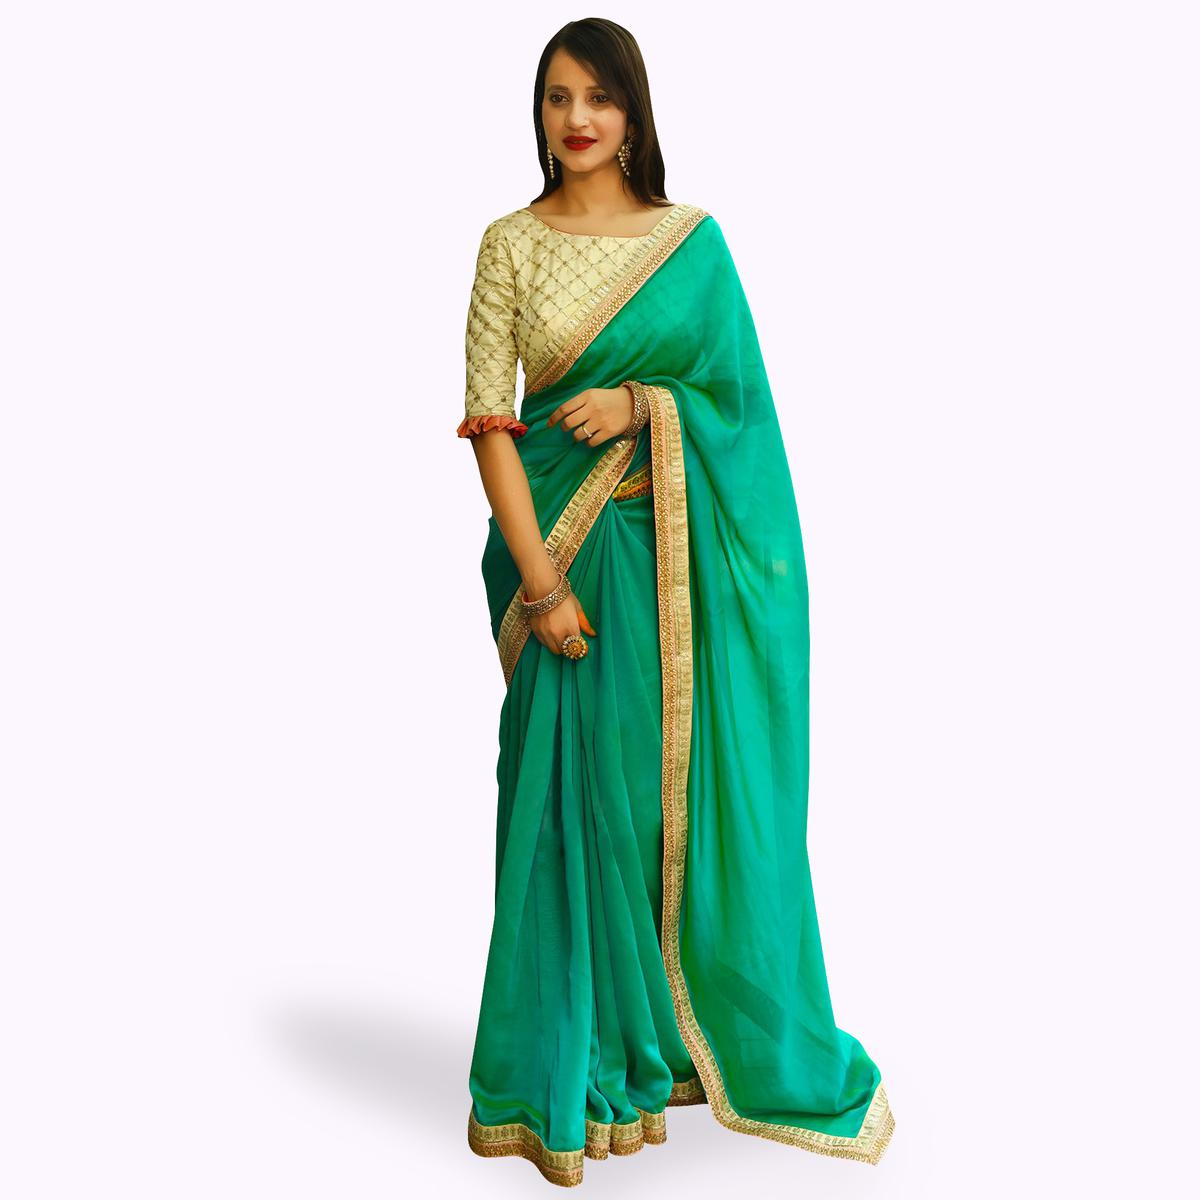 Magnetic Turquoise Green Colored Partywear Rangoli Silk Saree